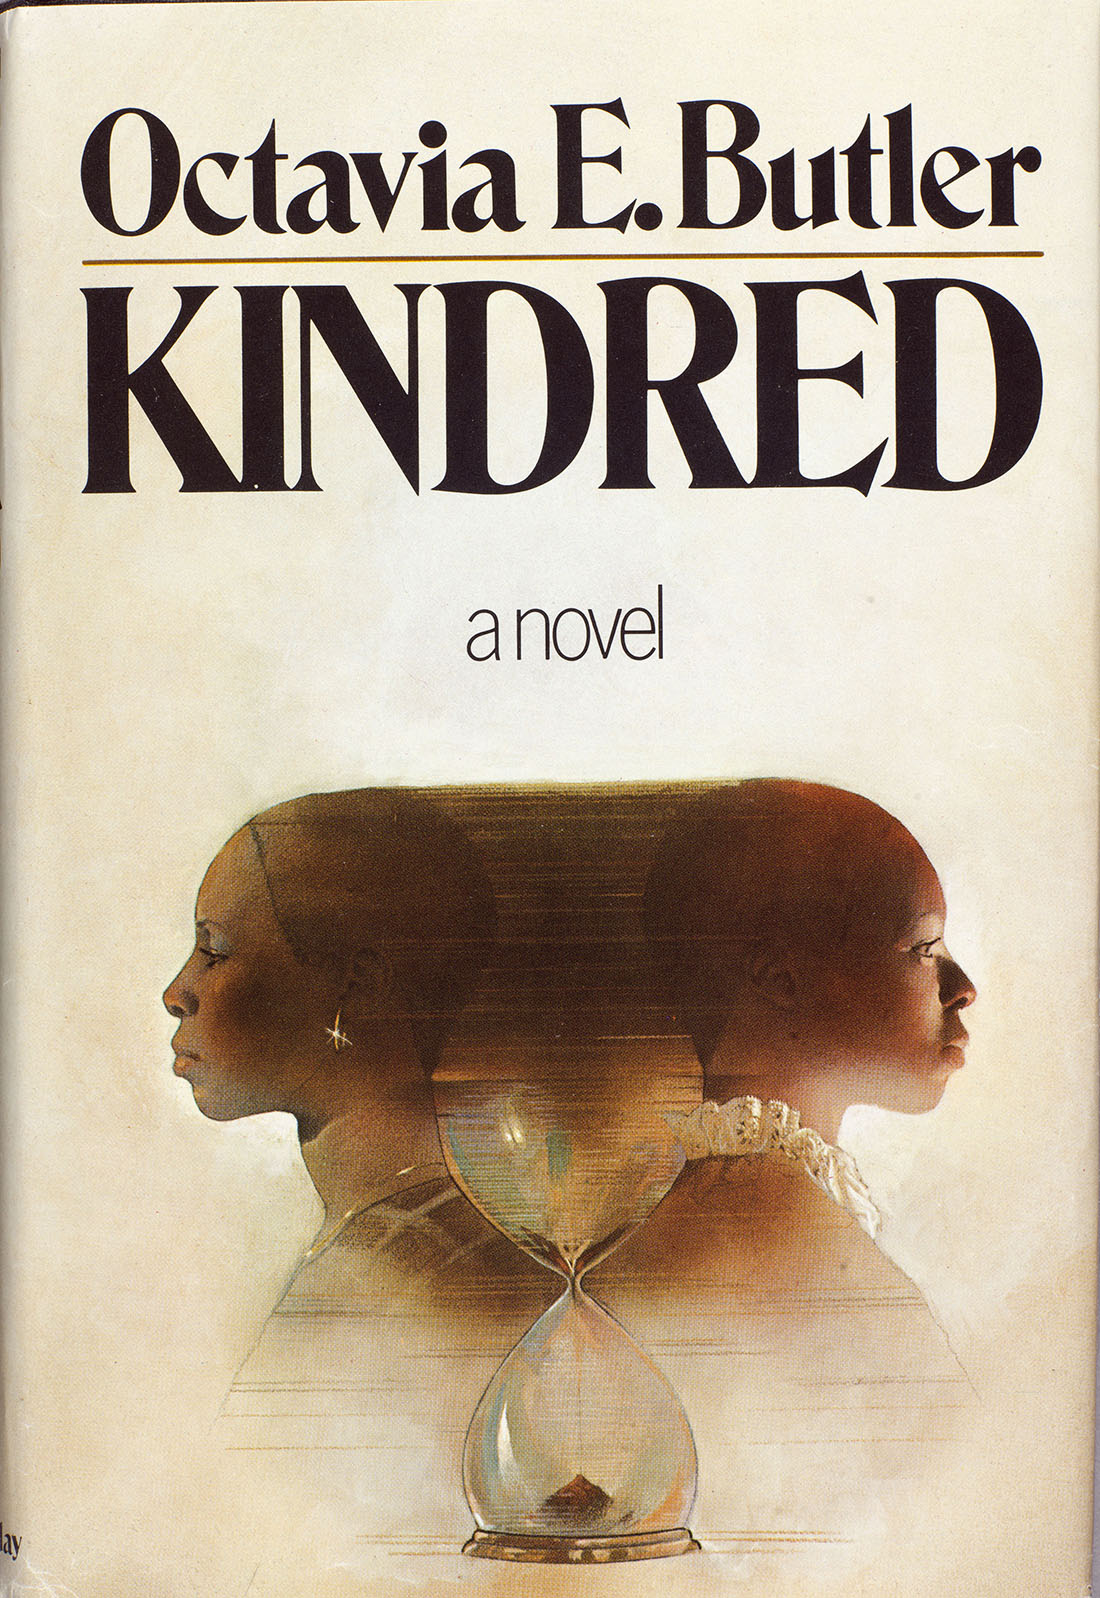 an analysis of octavia butlers novel kindred Coming january 2017: octavia e butler's bestselling literary science-fiction masterpiece, kindred, in graphic novel format more than 35 years after its release, kindred continues to draw in new readers with its deep exploration of the violence and loss of humanity caused by slavery in the united states, and its complex and lasting impact on.